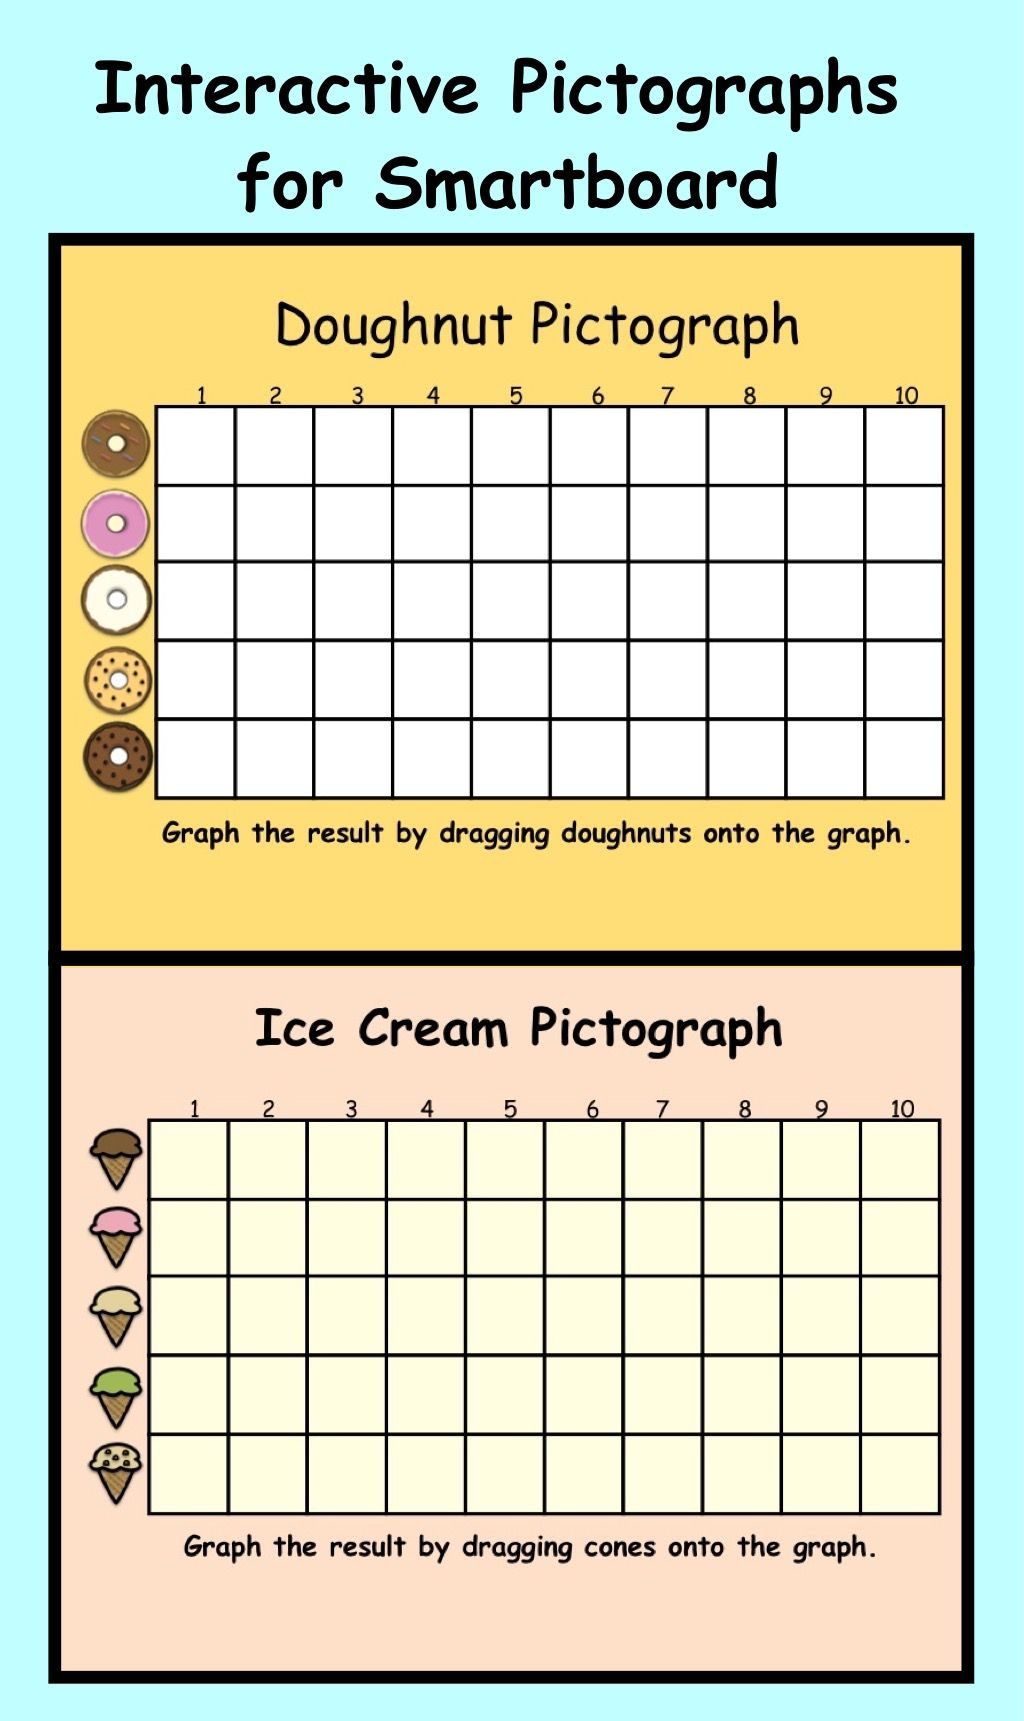 medium resolution of Interactive Pictographs for Smartboard   Smart board